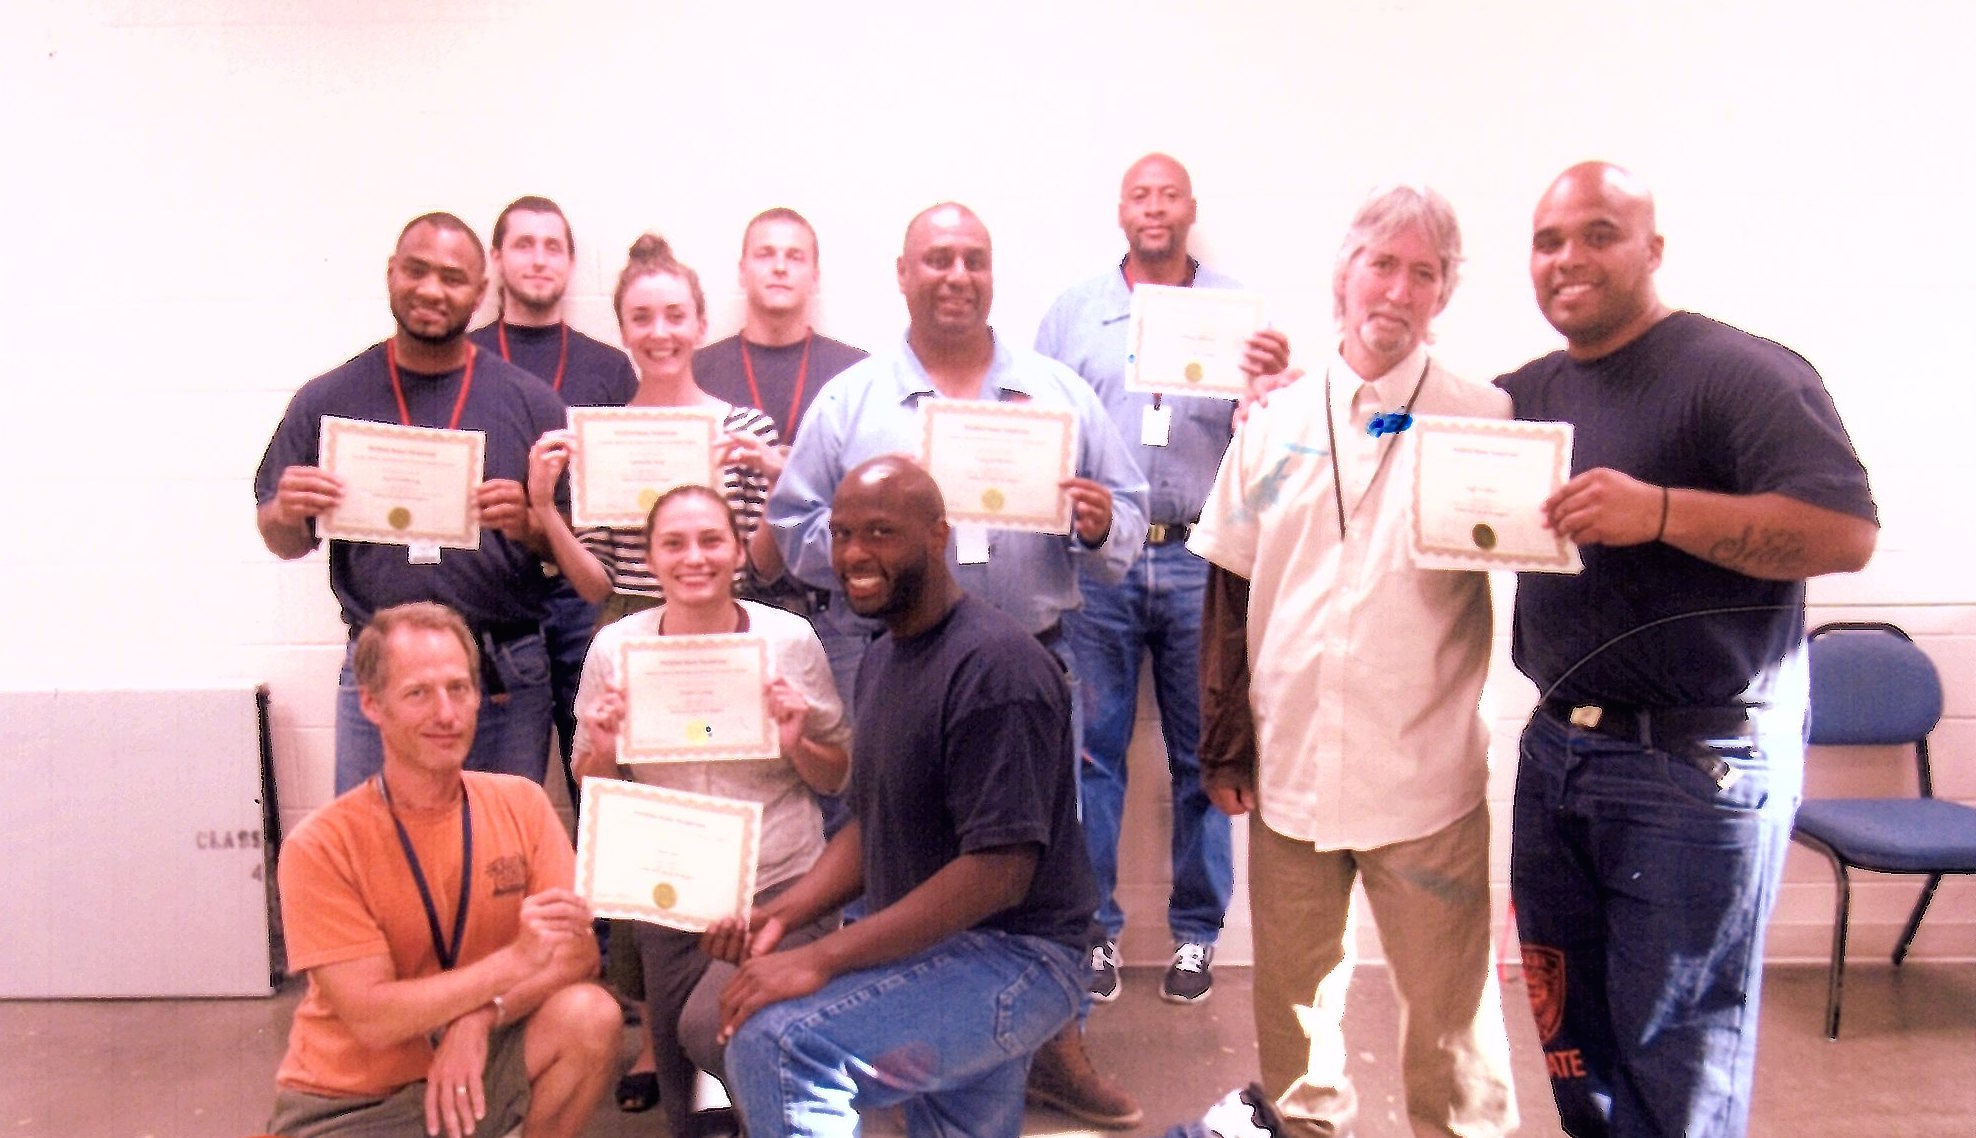 16-08-02-crci-rcs-certificate-photo